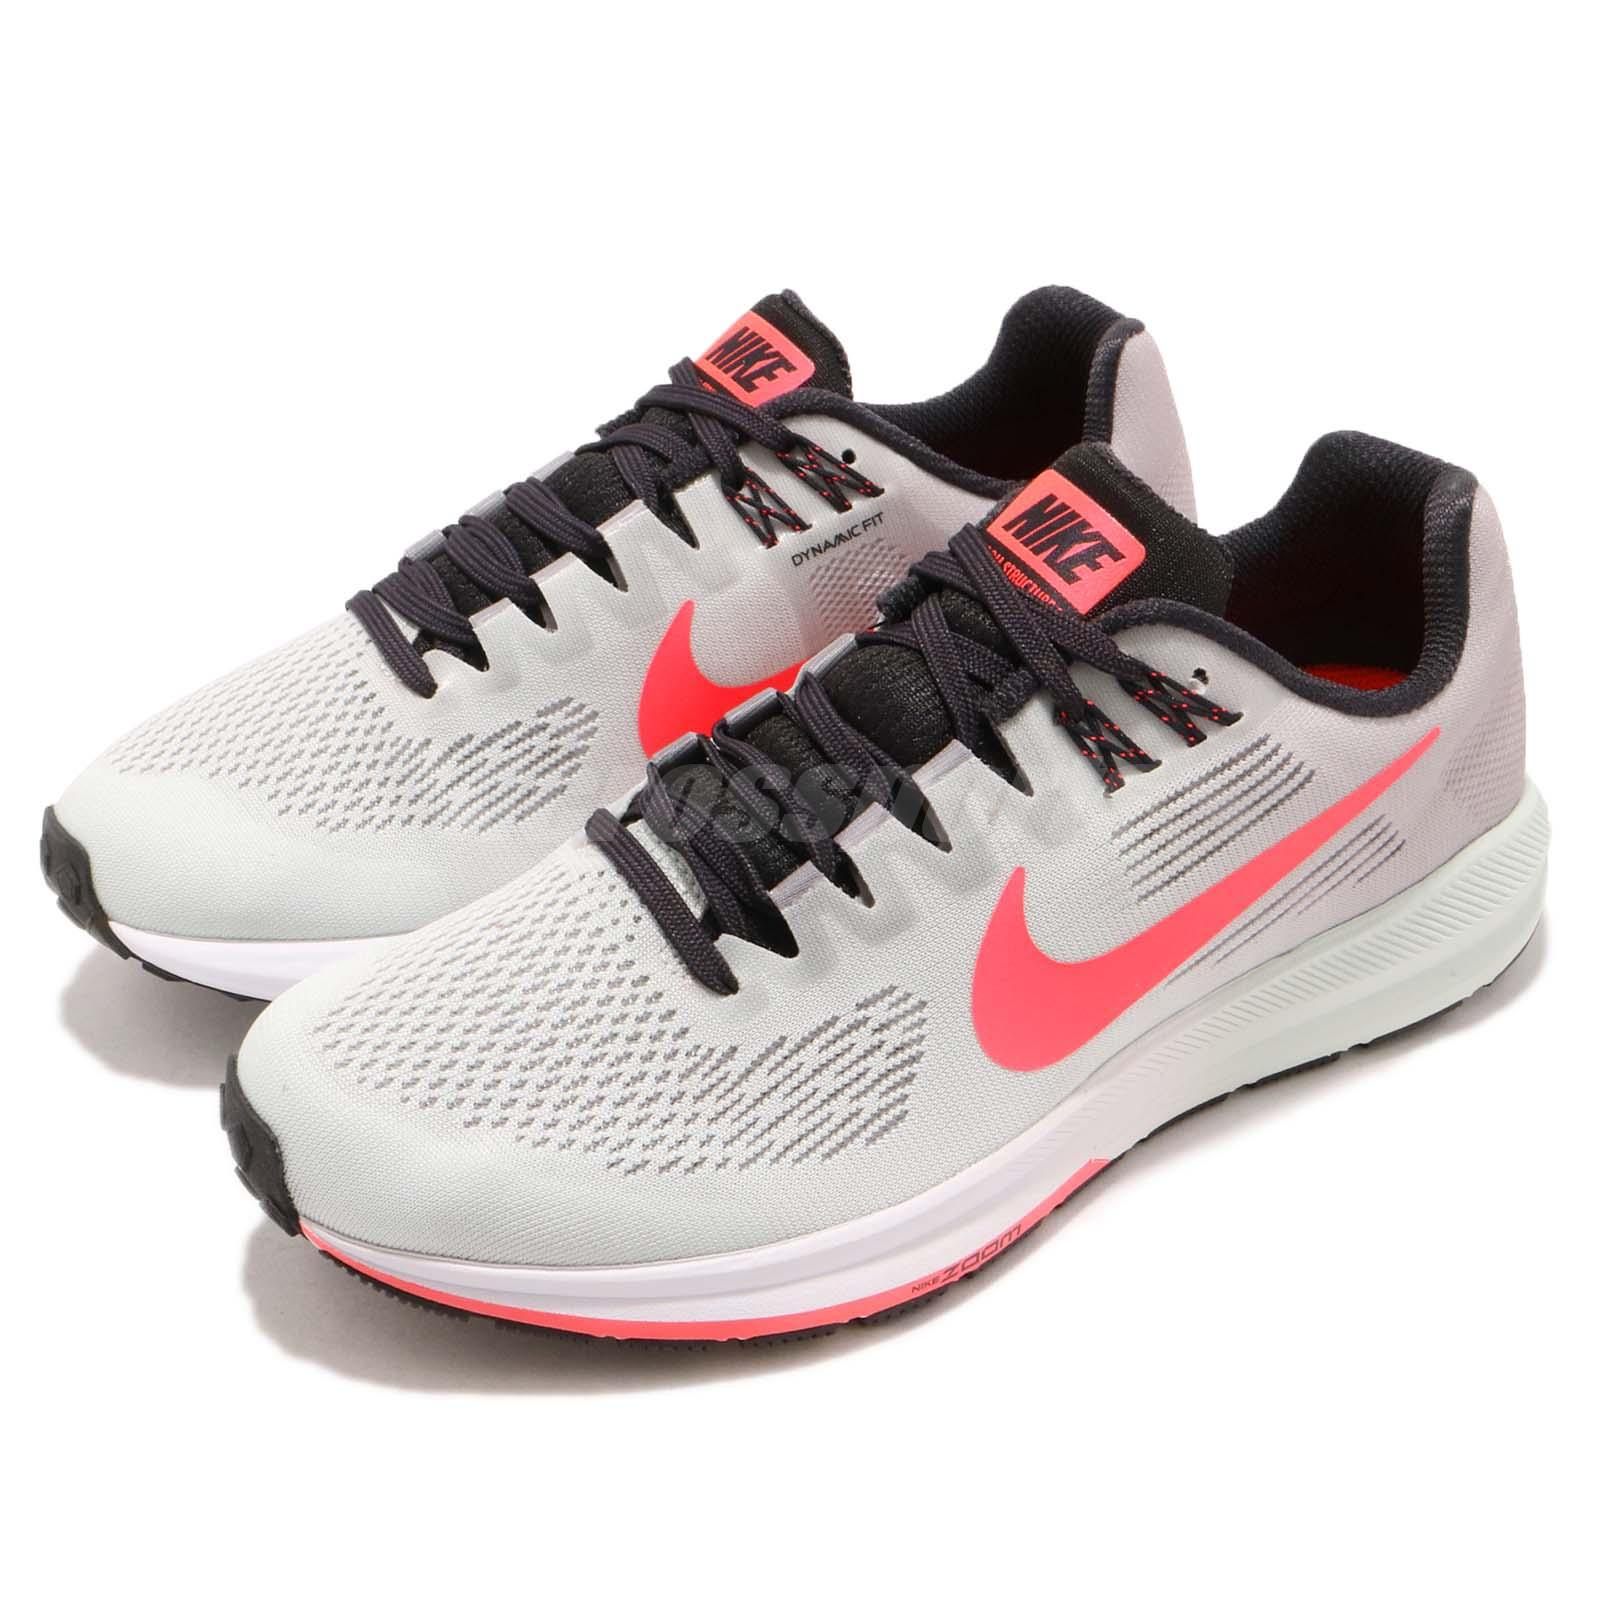 3751ee665d825 Nike Wmns Air Zoom Structure 21 Grey Hot Punch Women Running Shoes ...